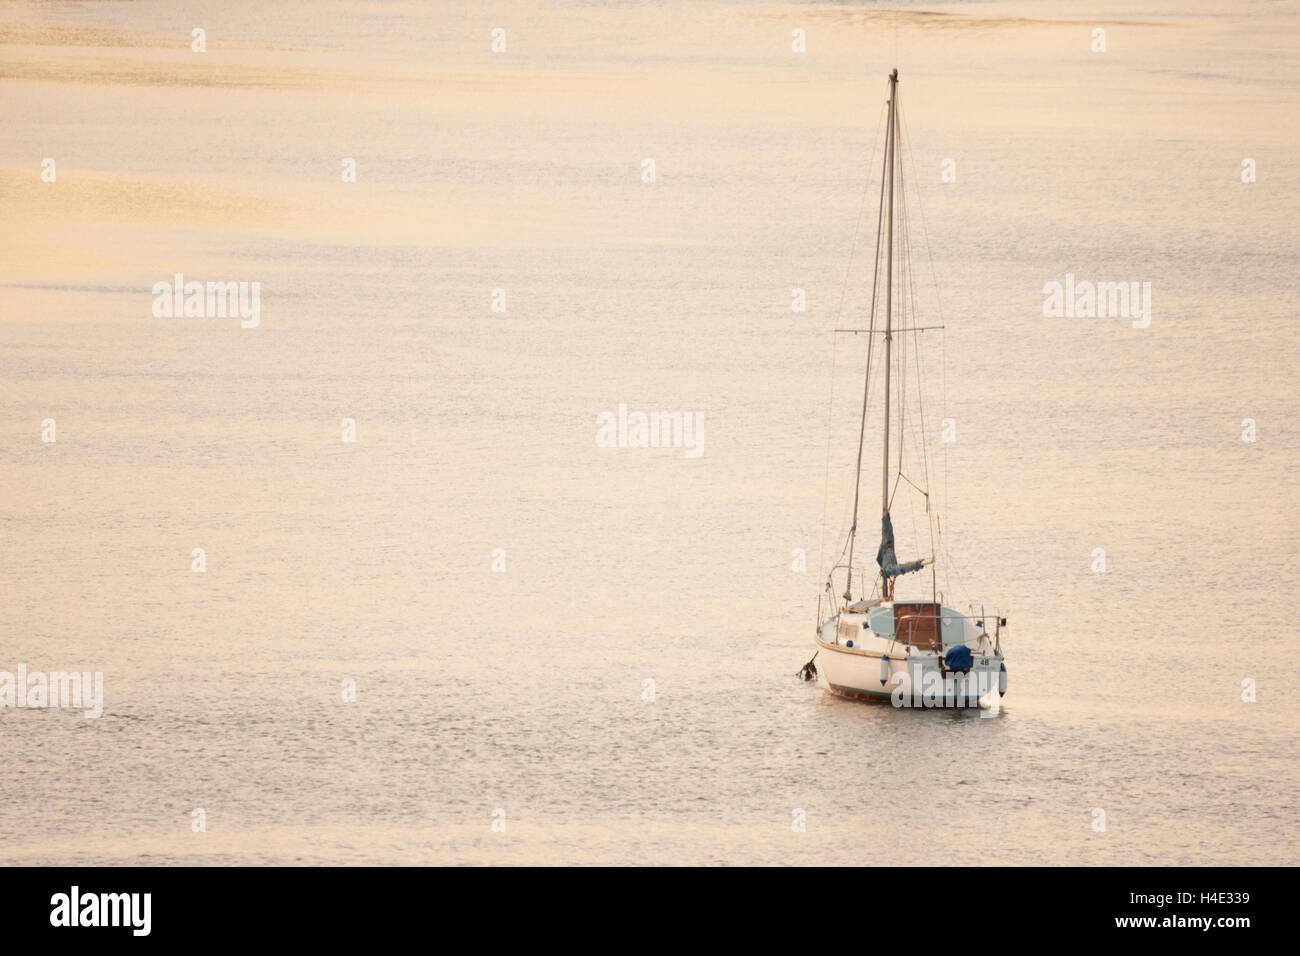 White sail boat moored in the estuary with golden evening light catching the water, a place of sanctuary, at Alnmouth - Stock Image